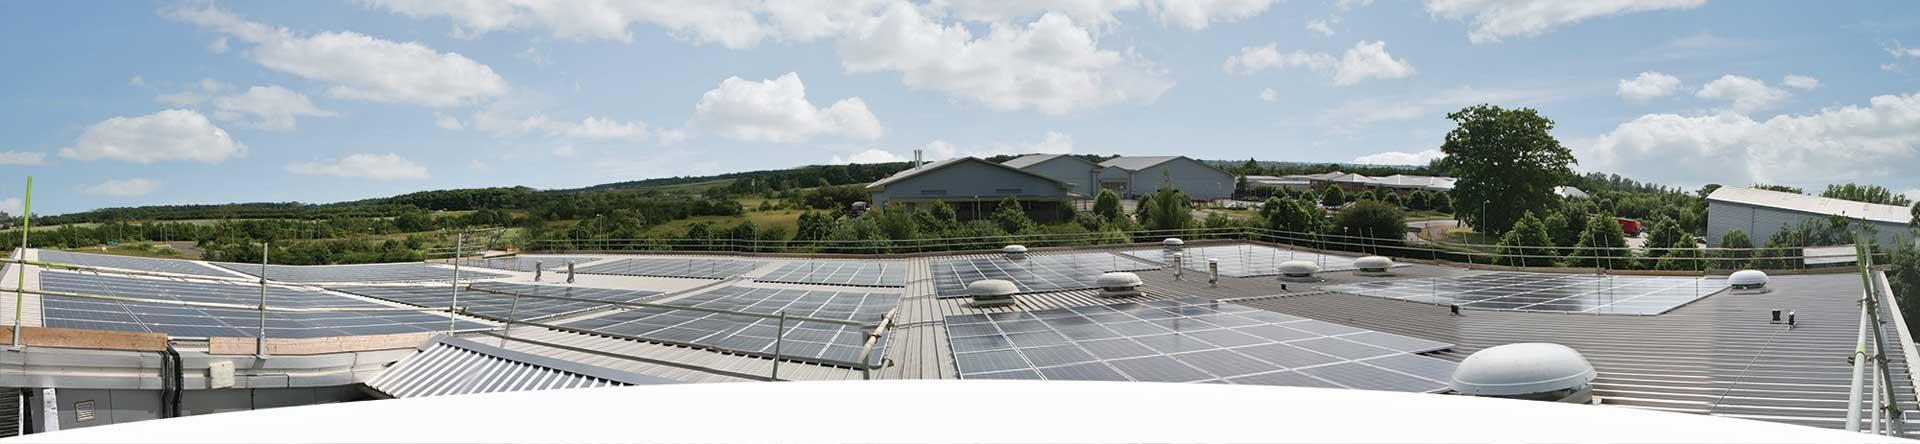 Panoramic View of Solar Panel at Db Engineering